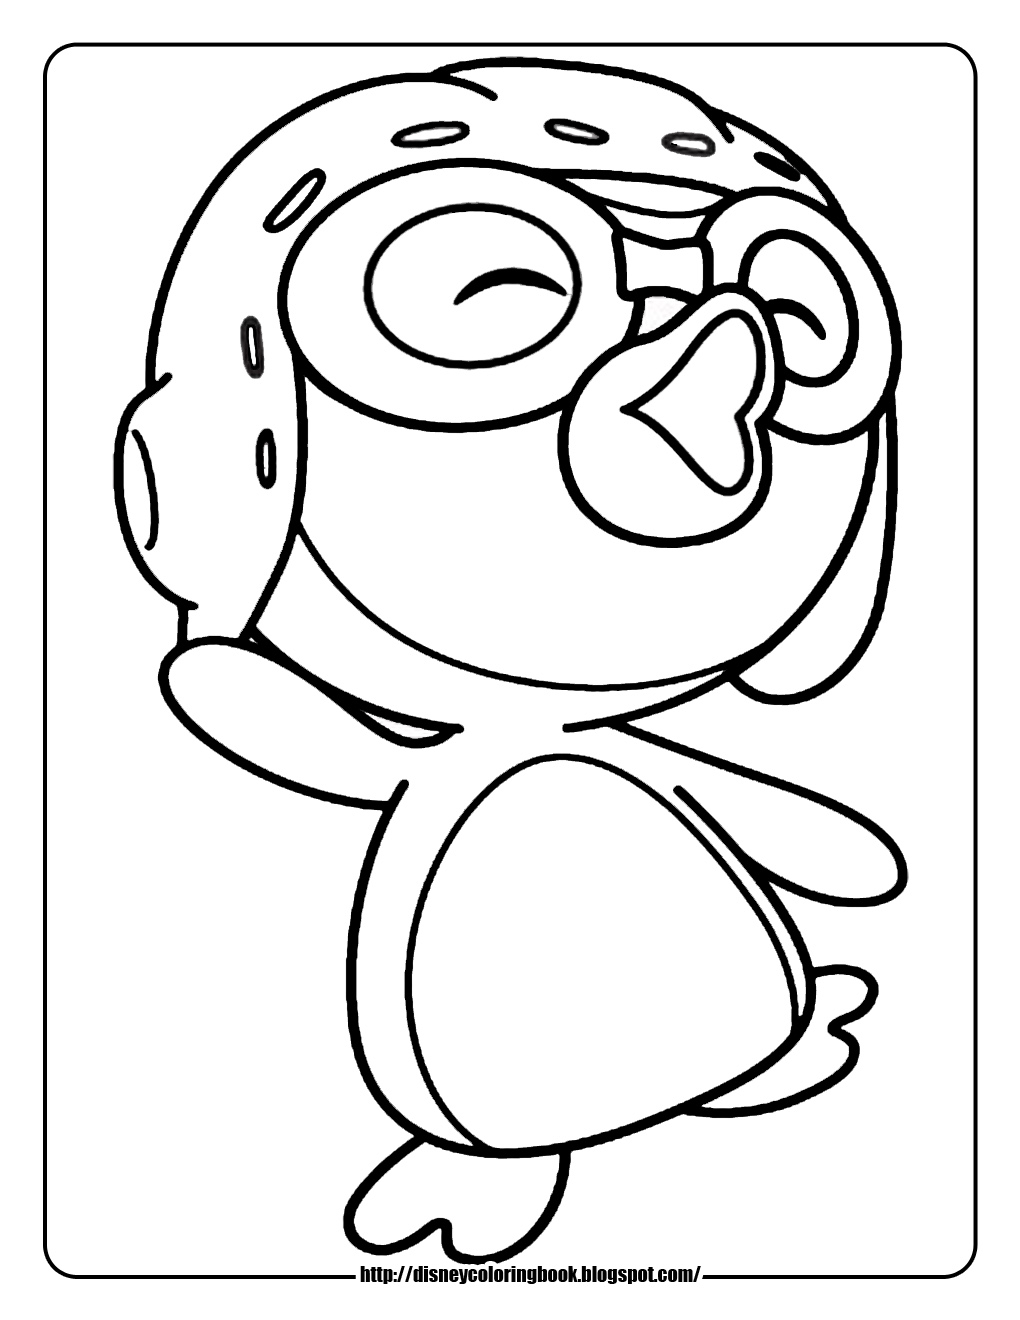 coloring penguin printable penguin coloring pages for kids cool2bkids penguin coloring